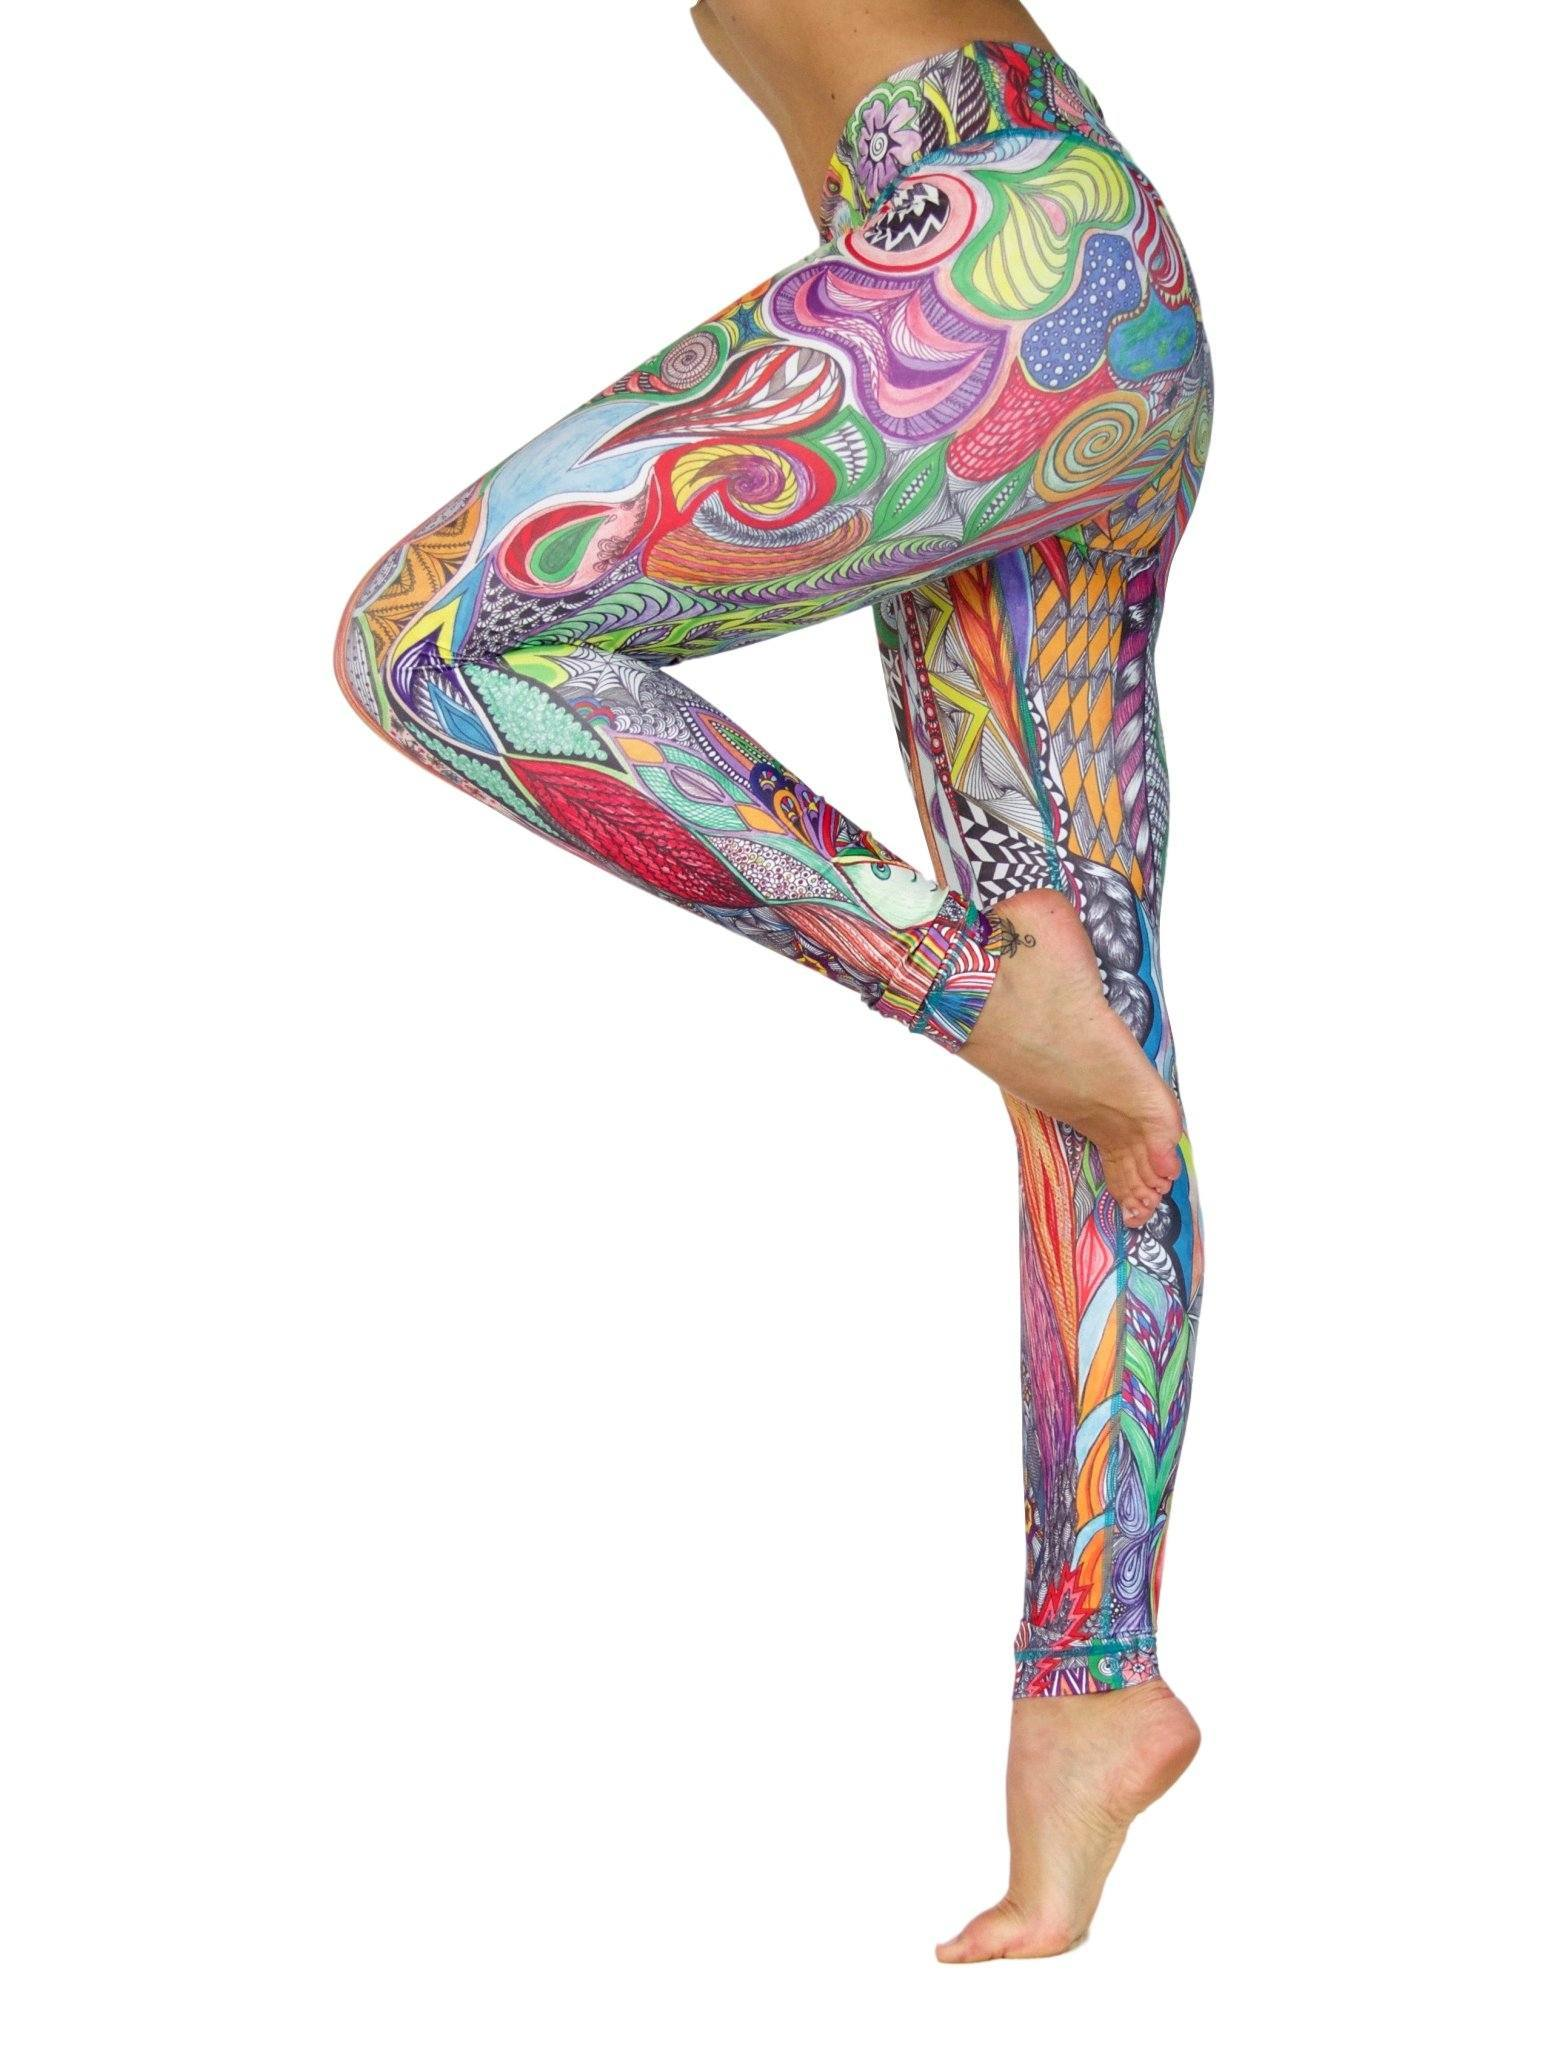 Hakuna Matata by Niyama - High Quality, , Yoga Legging for Movement Artists.